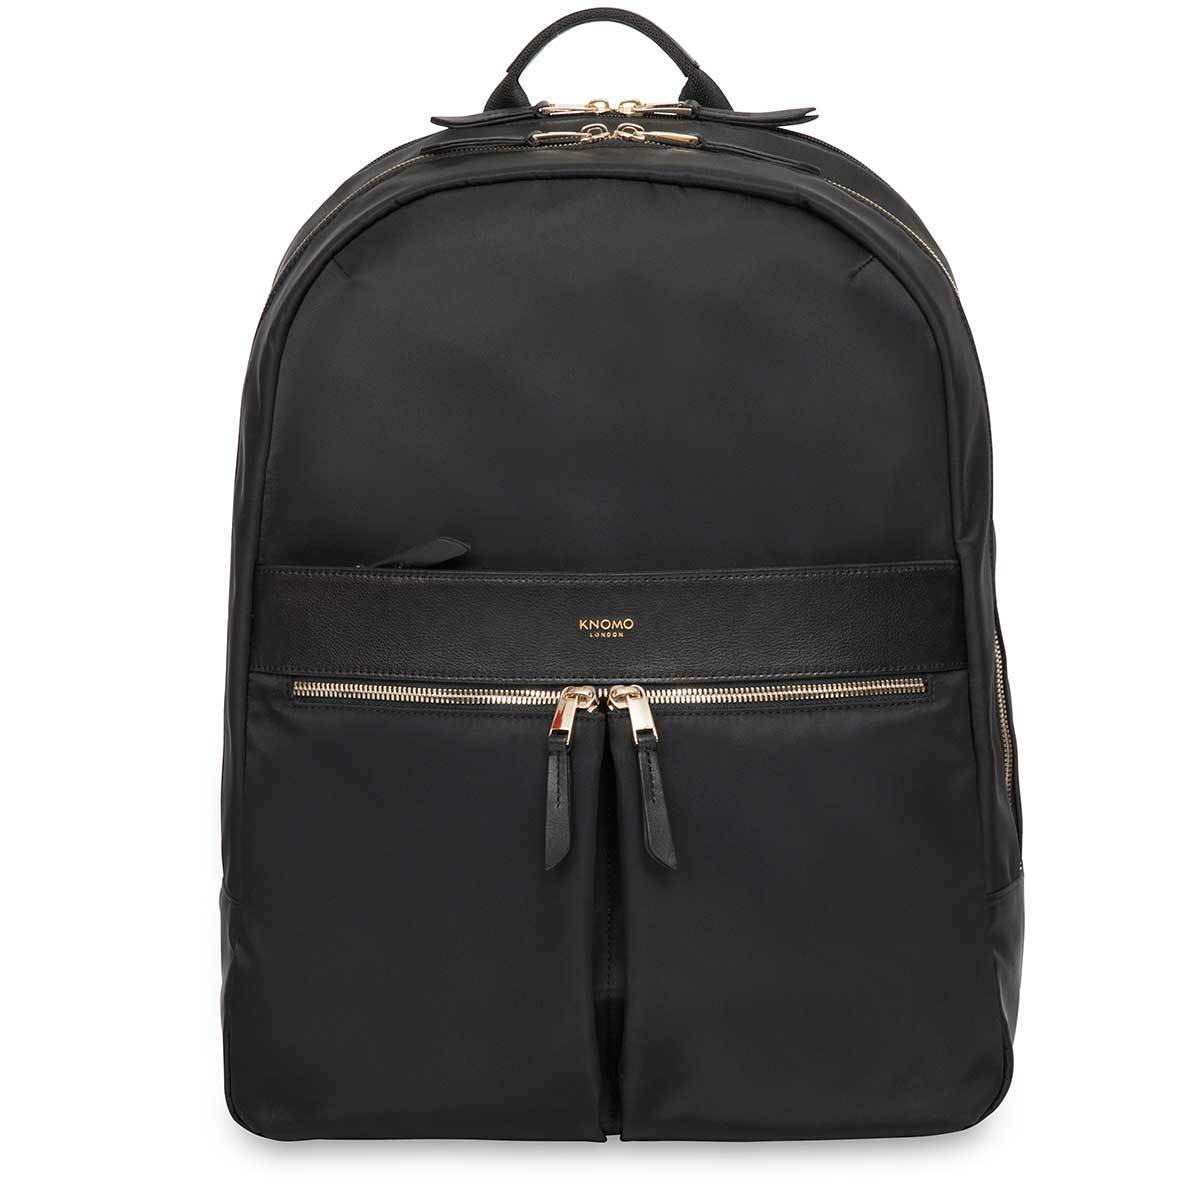 "Beaufort Women's 15"" Laptop Backpack - Black – KNOMO"